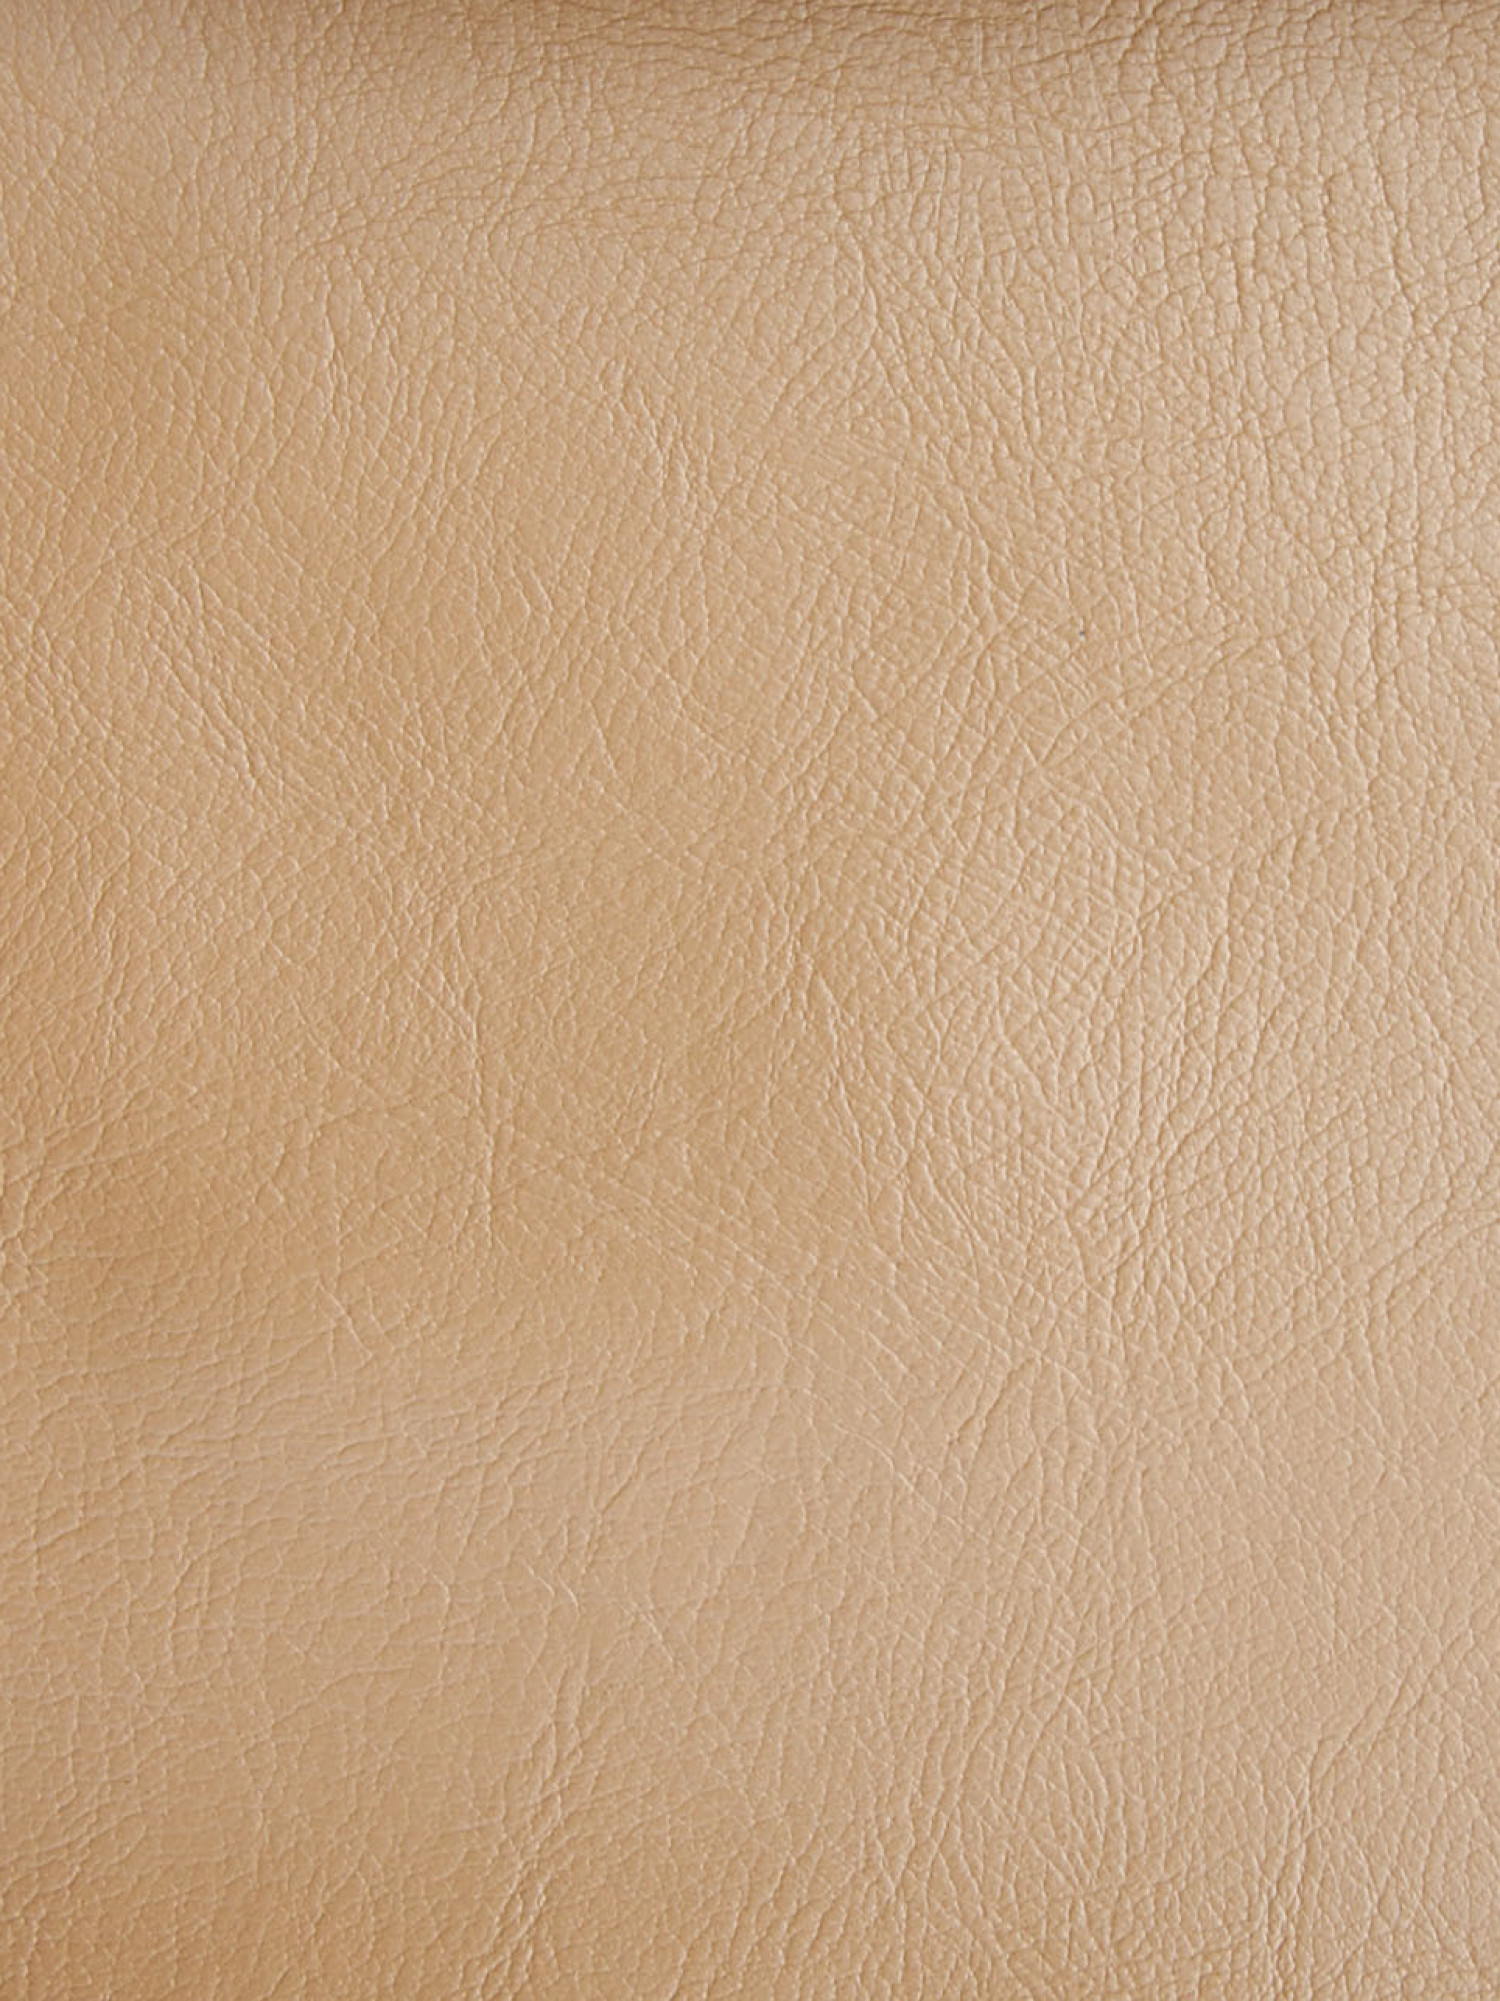 Leatherette Upholstery Fabric